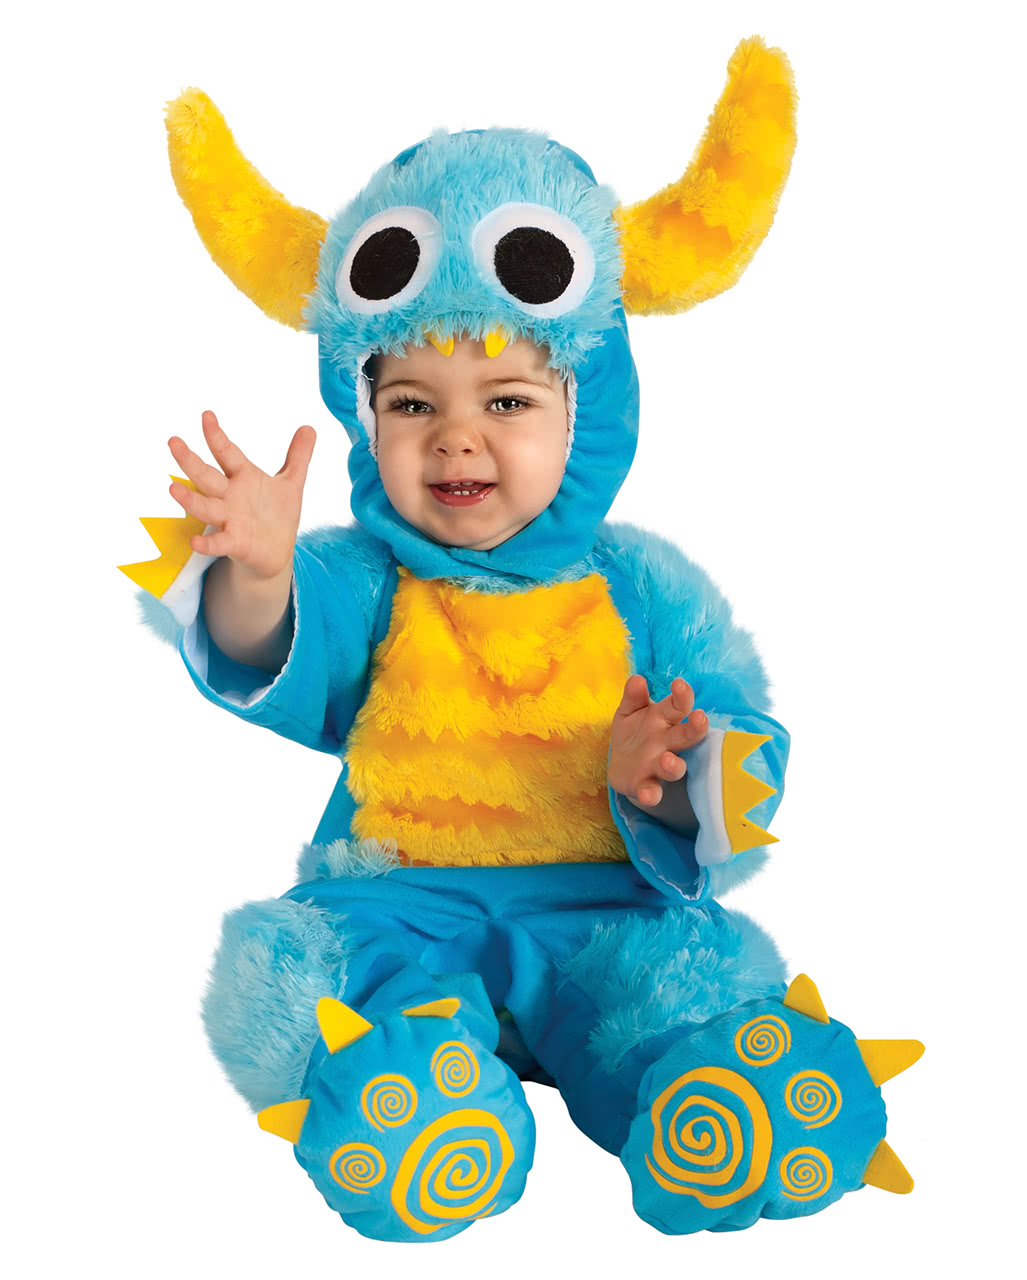 Biscuit monster baby costume blue